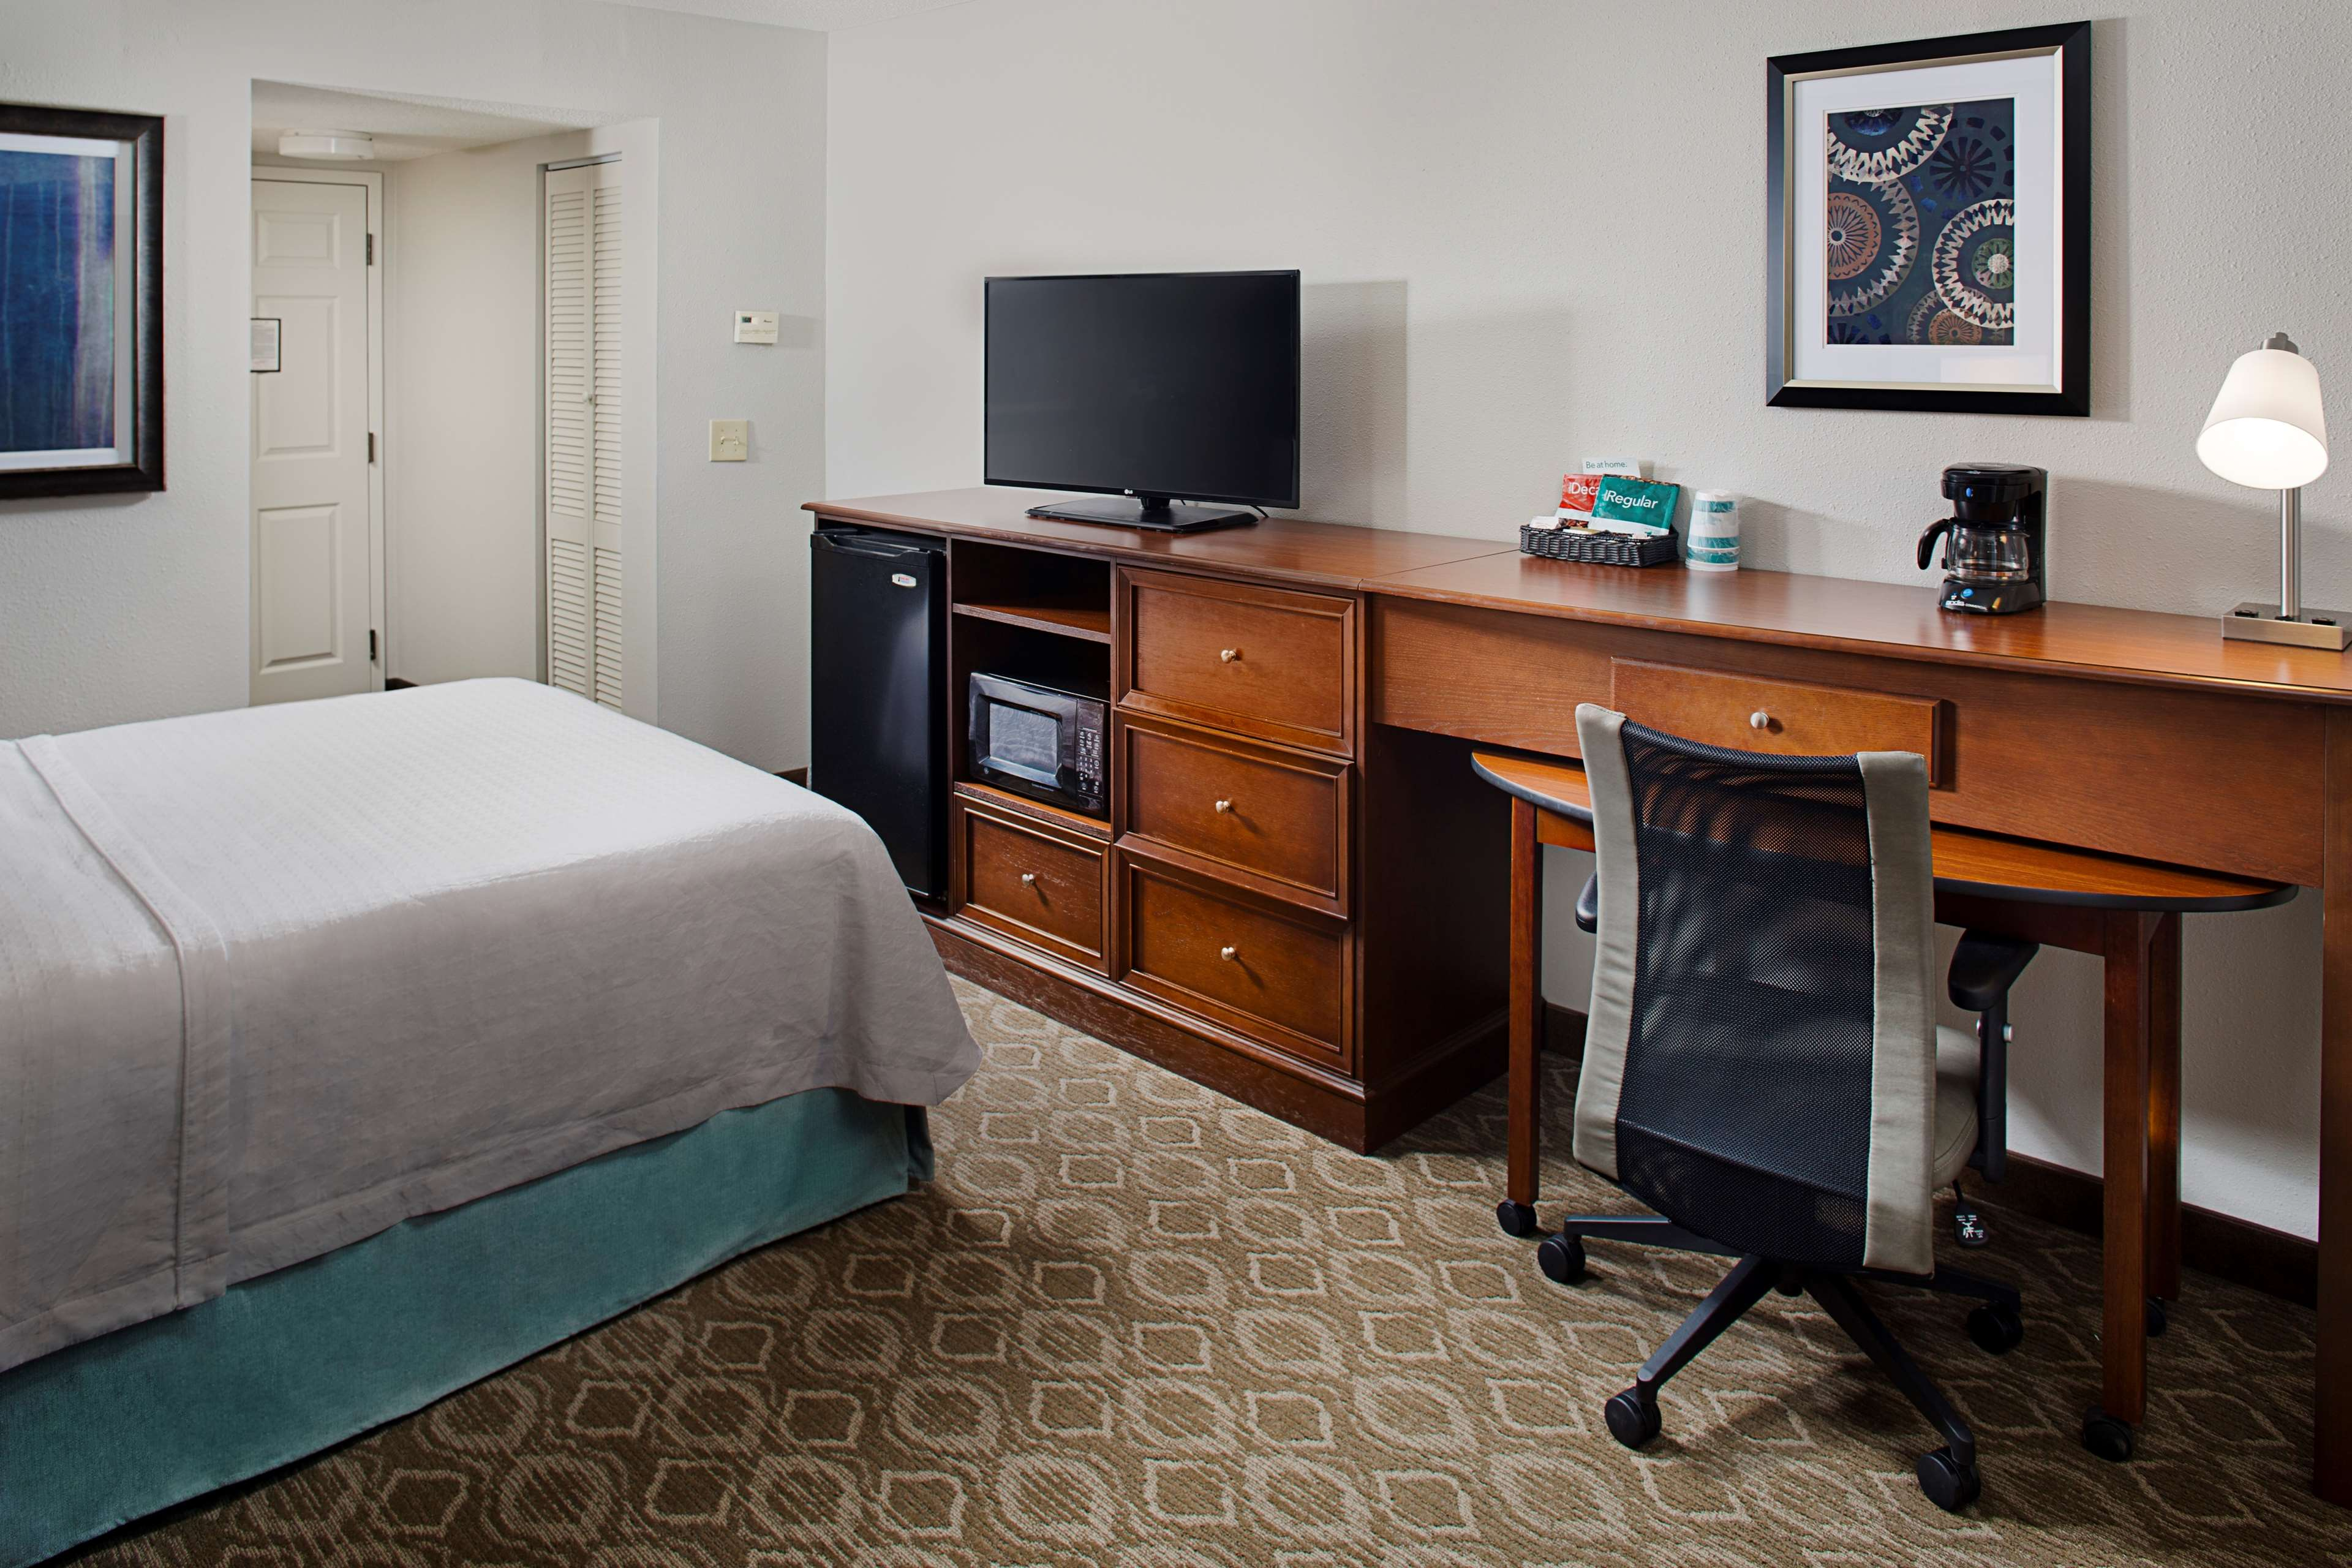 Homewood Suites by Hilton Raleigh/Cary image 35